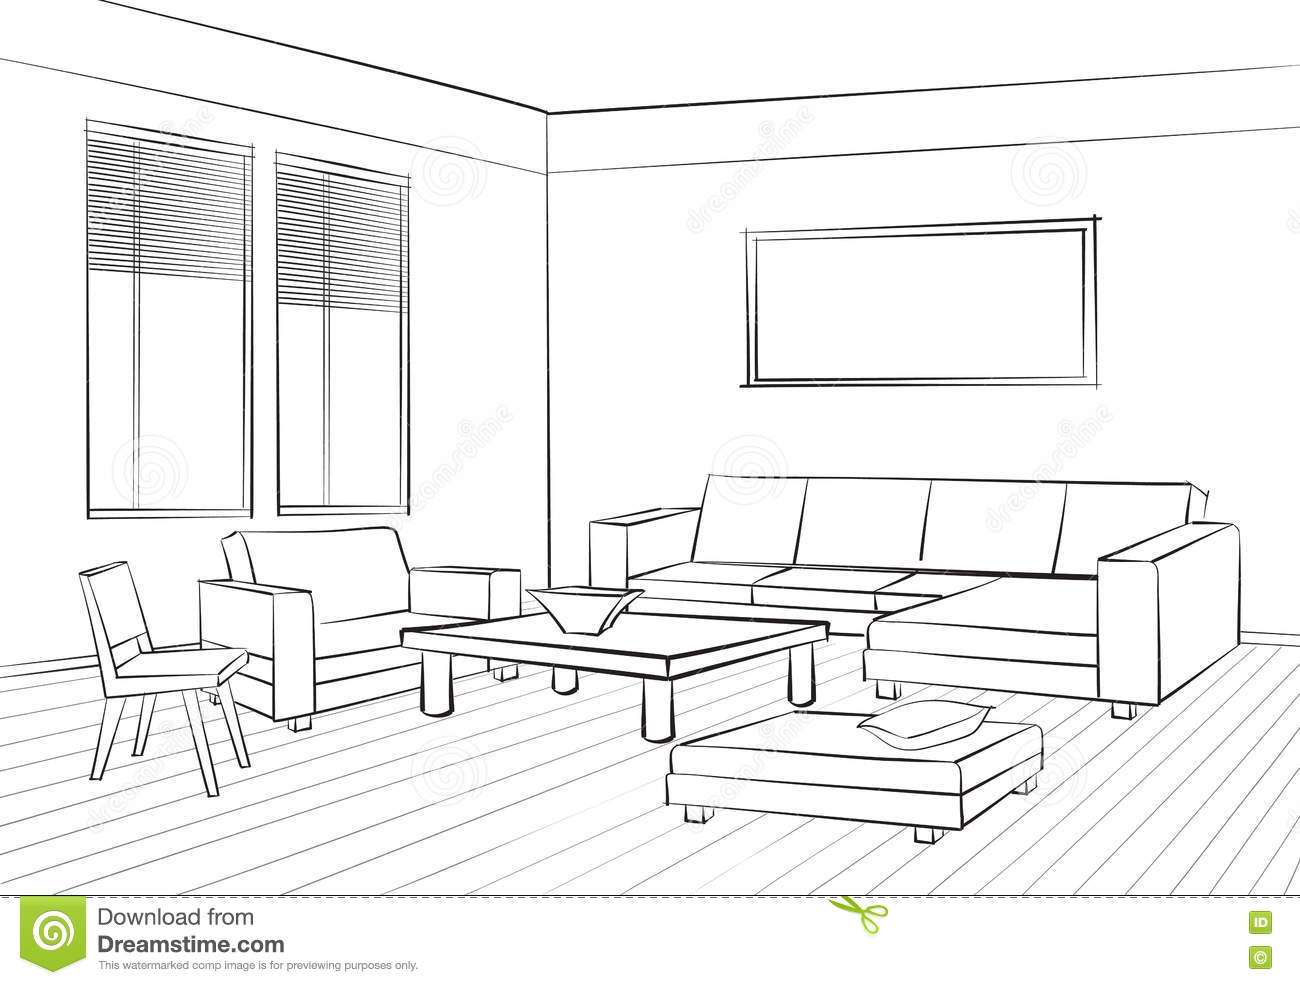 Living room design room interior sketch interior furniture for Drawing room design images